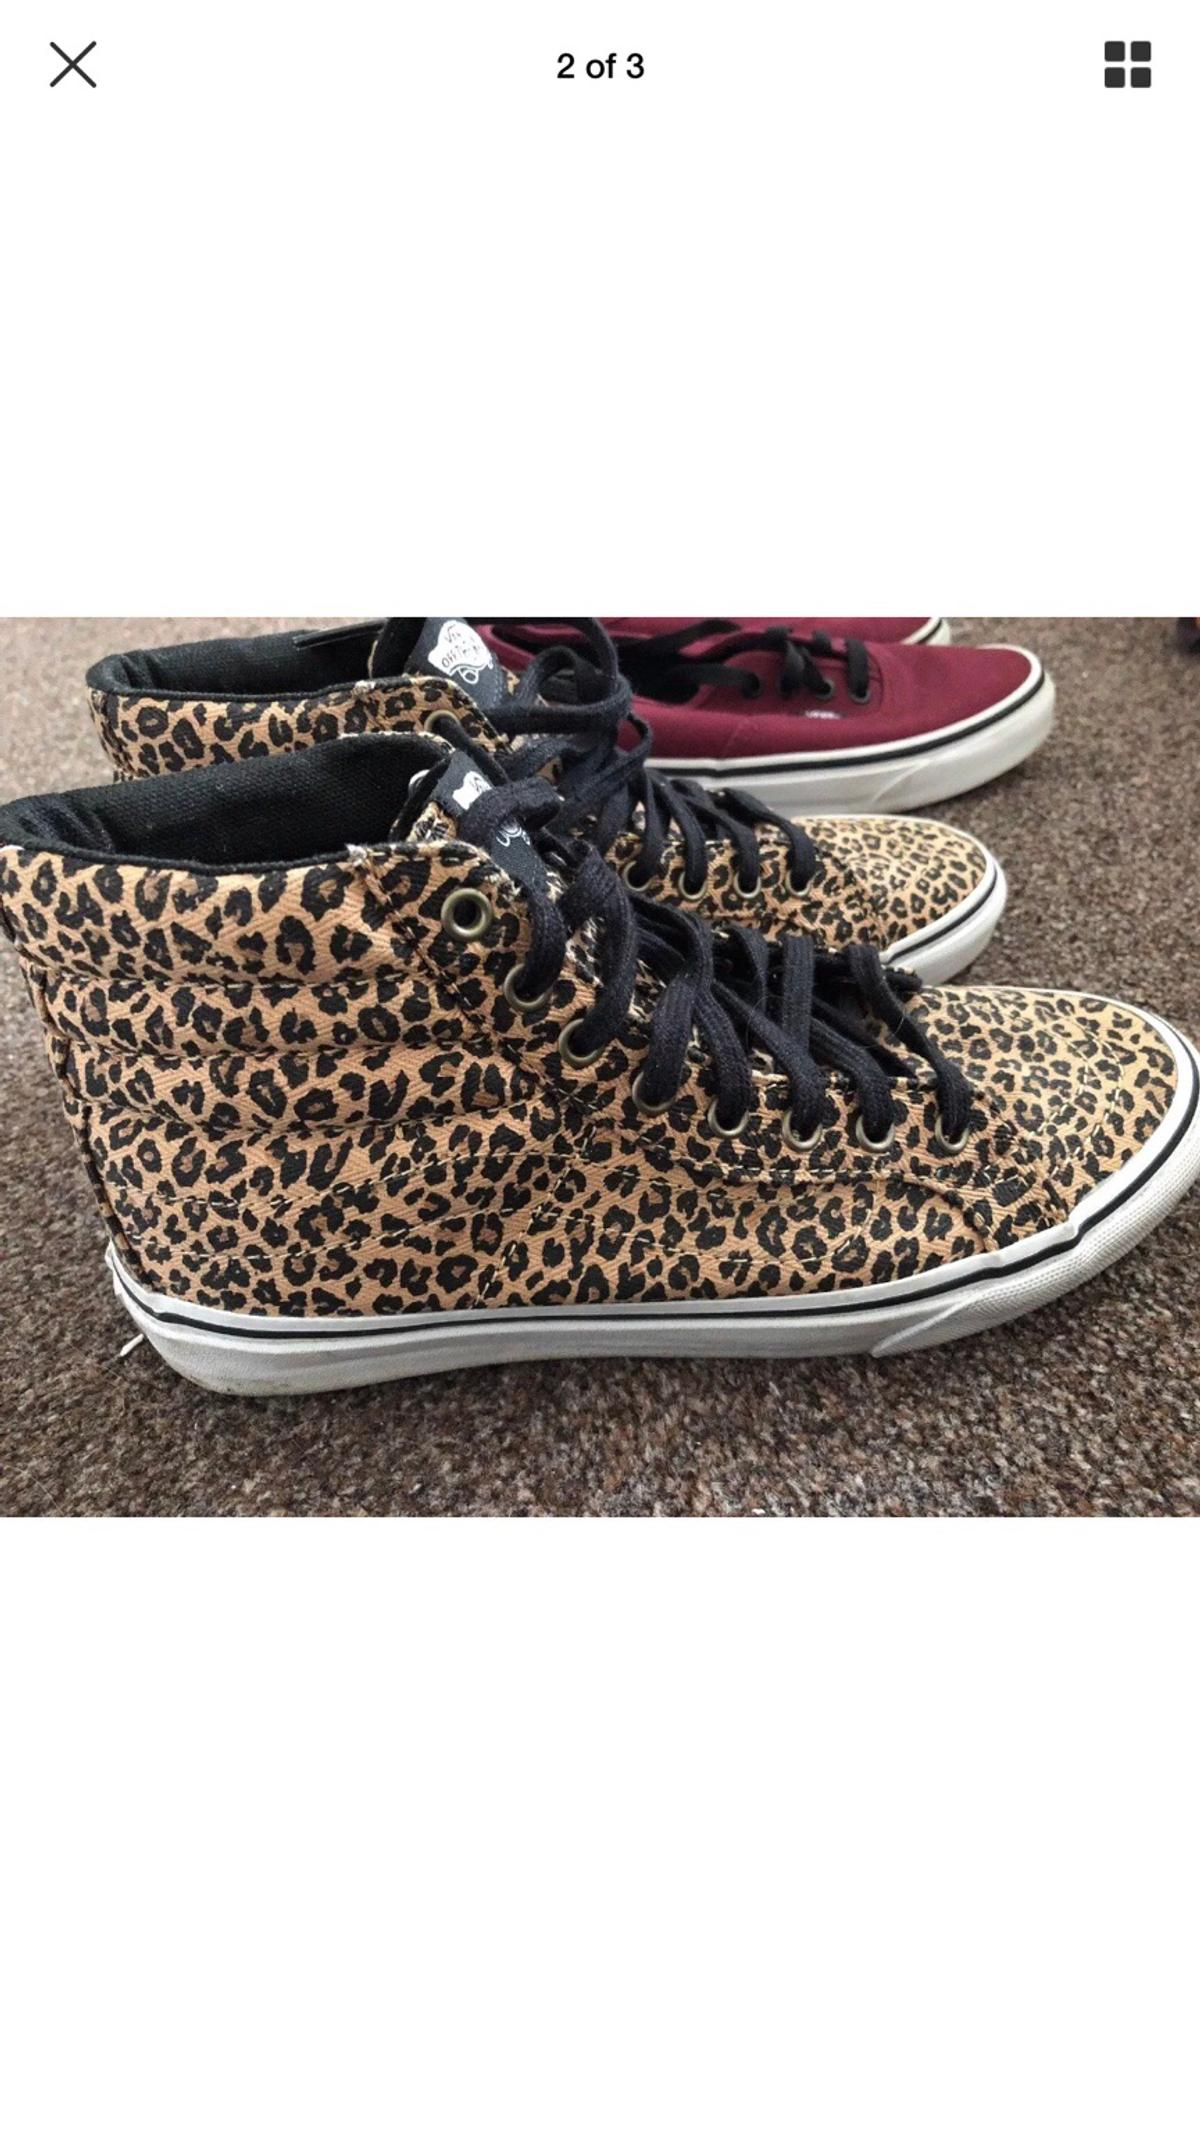 d3e319fa02d1 Vans hi top leopard print size 5 in Epping Forest for £15.00 for ...